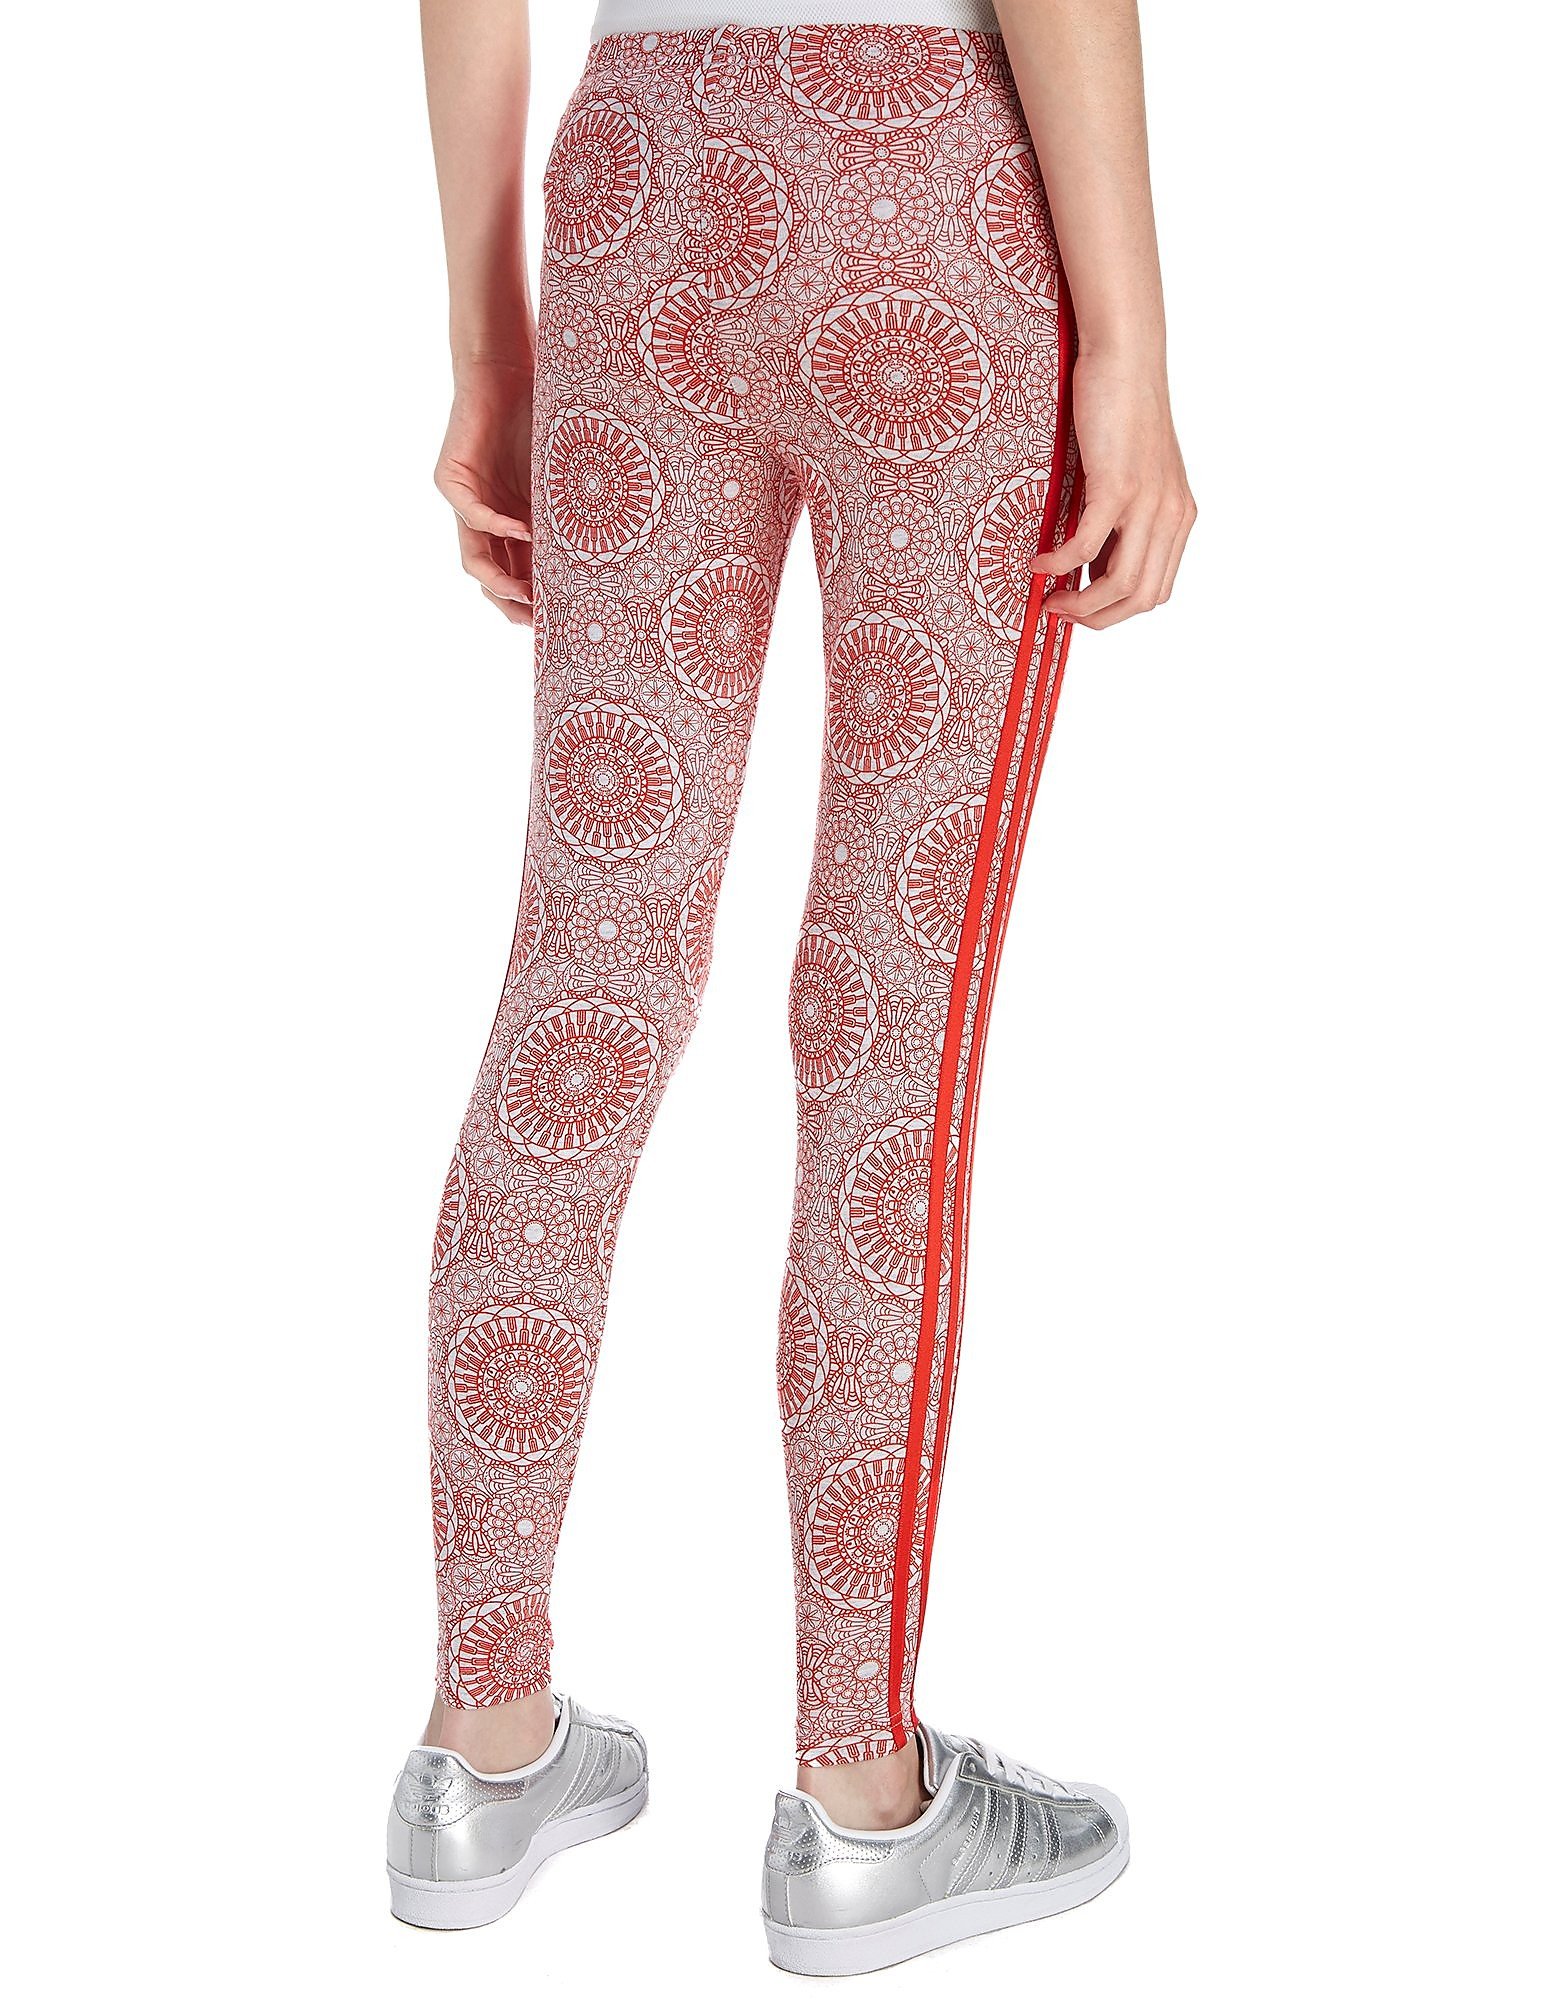 adidas Originals Girls' London All-Over Print Tights Junior